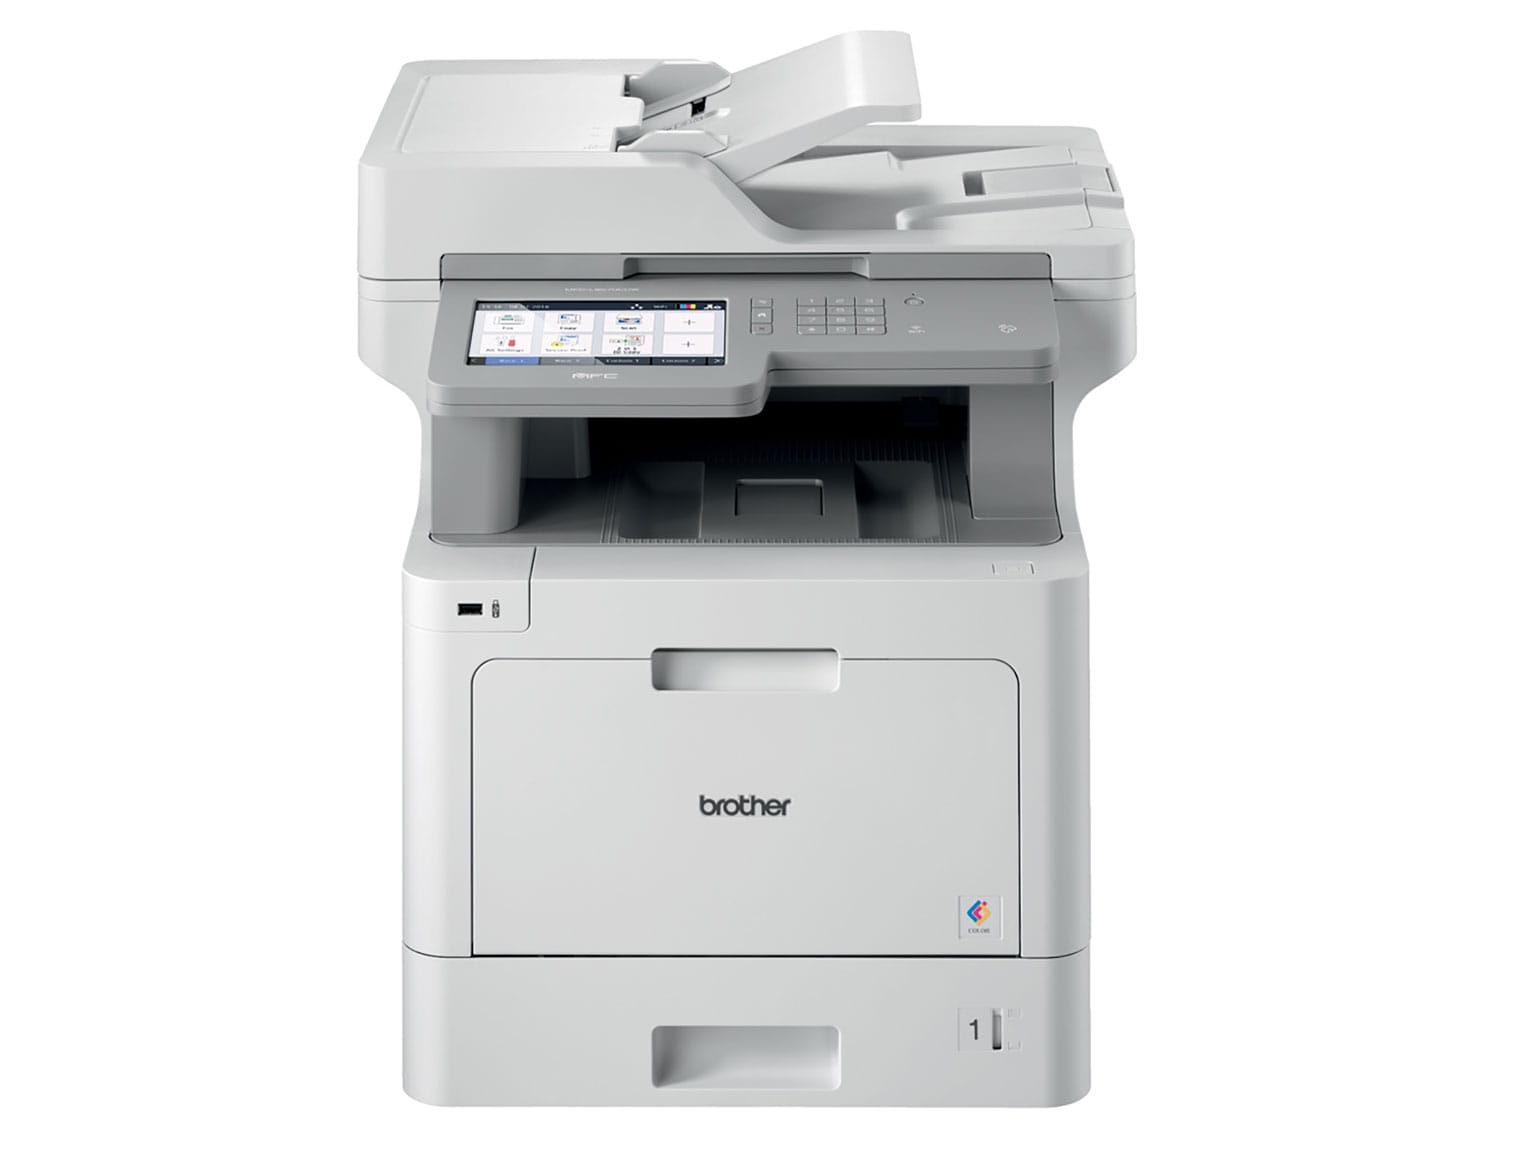 Brother MFC-L9570CDW all-in-one colour laser printer